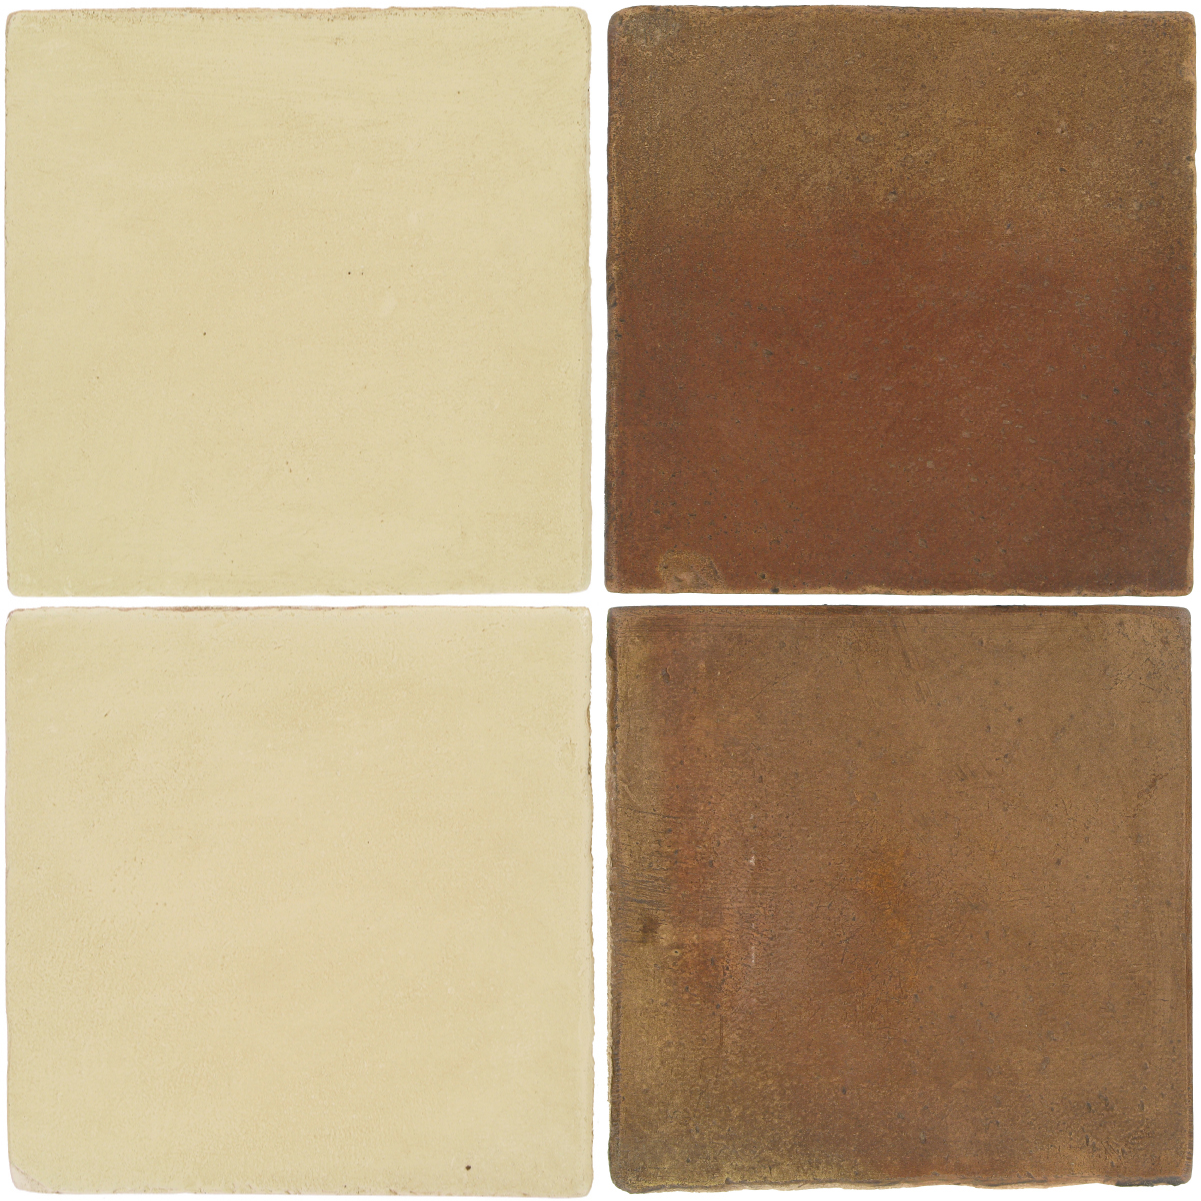 Pedralbes Antique Terracotta  2 Color Combinations  OHS-PGPW Pergamino White + OHS-PSCM Camel Brown